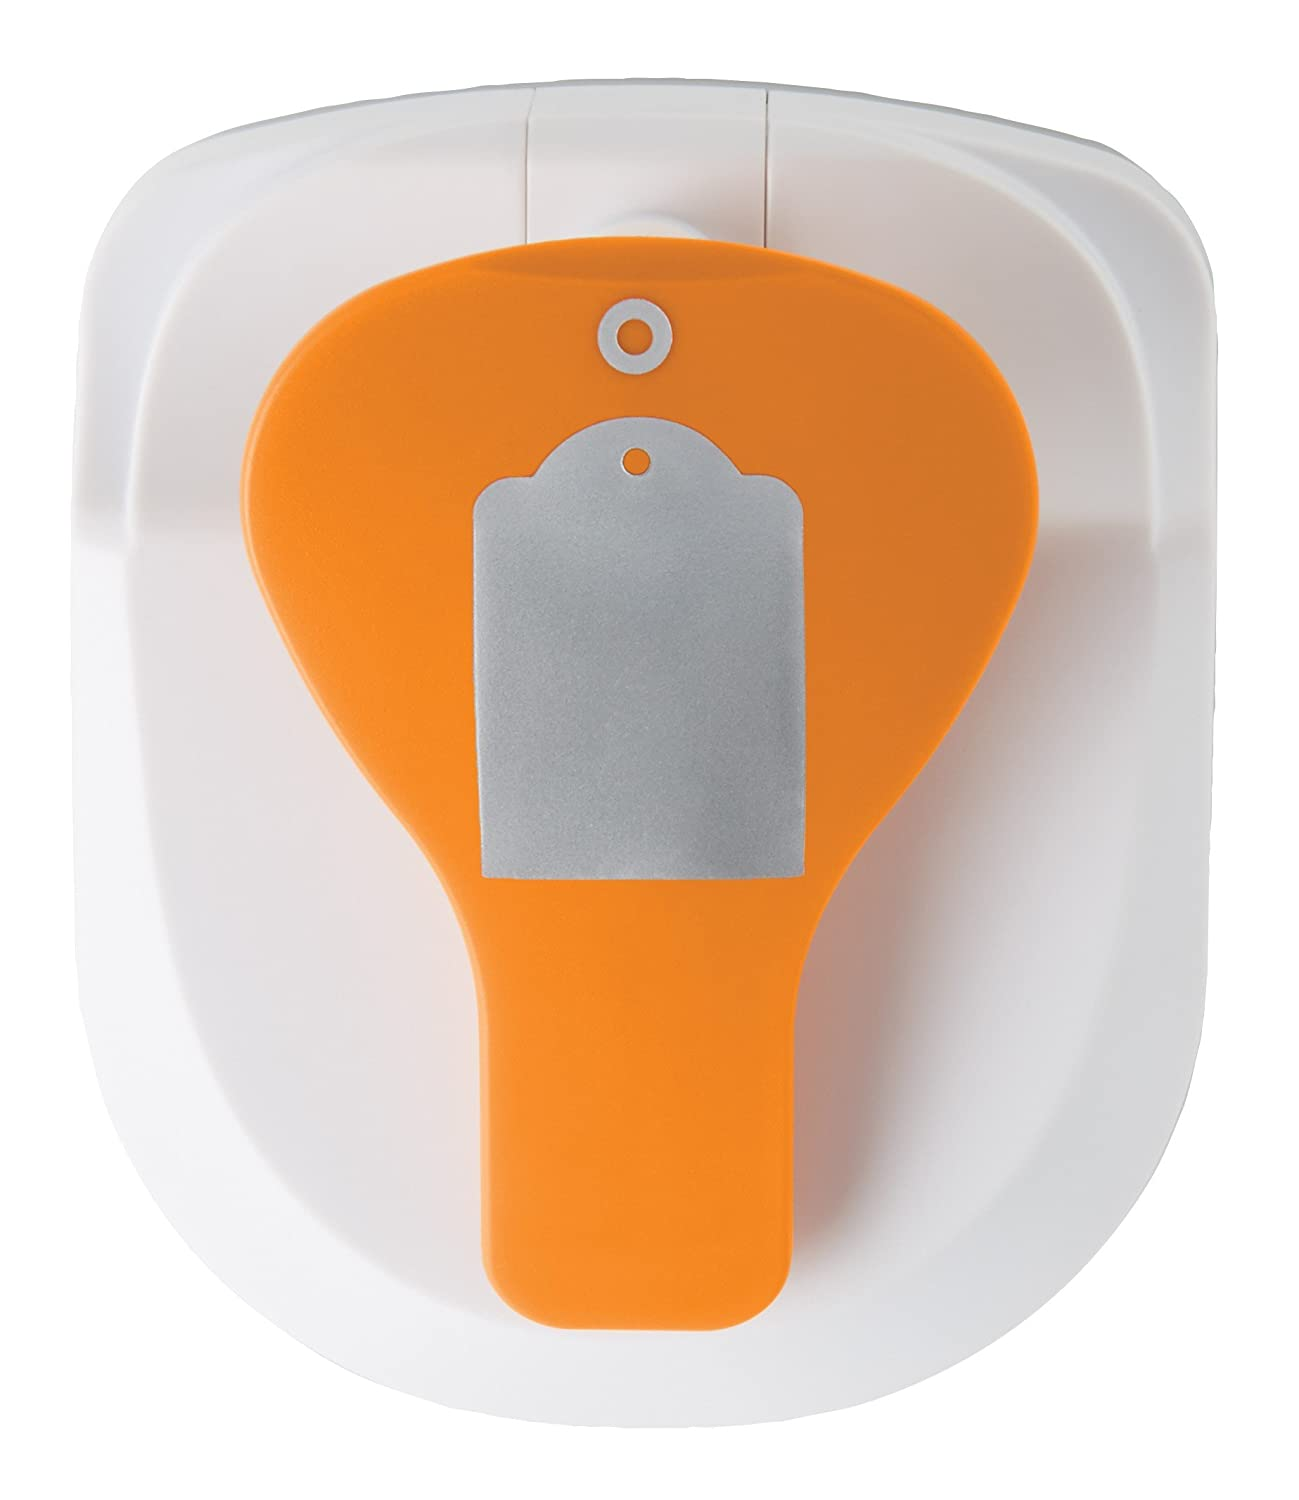 Fiskars 197500-1002 Tag Maker with Built-in Eyelet Setter, Standard, Orange/White